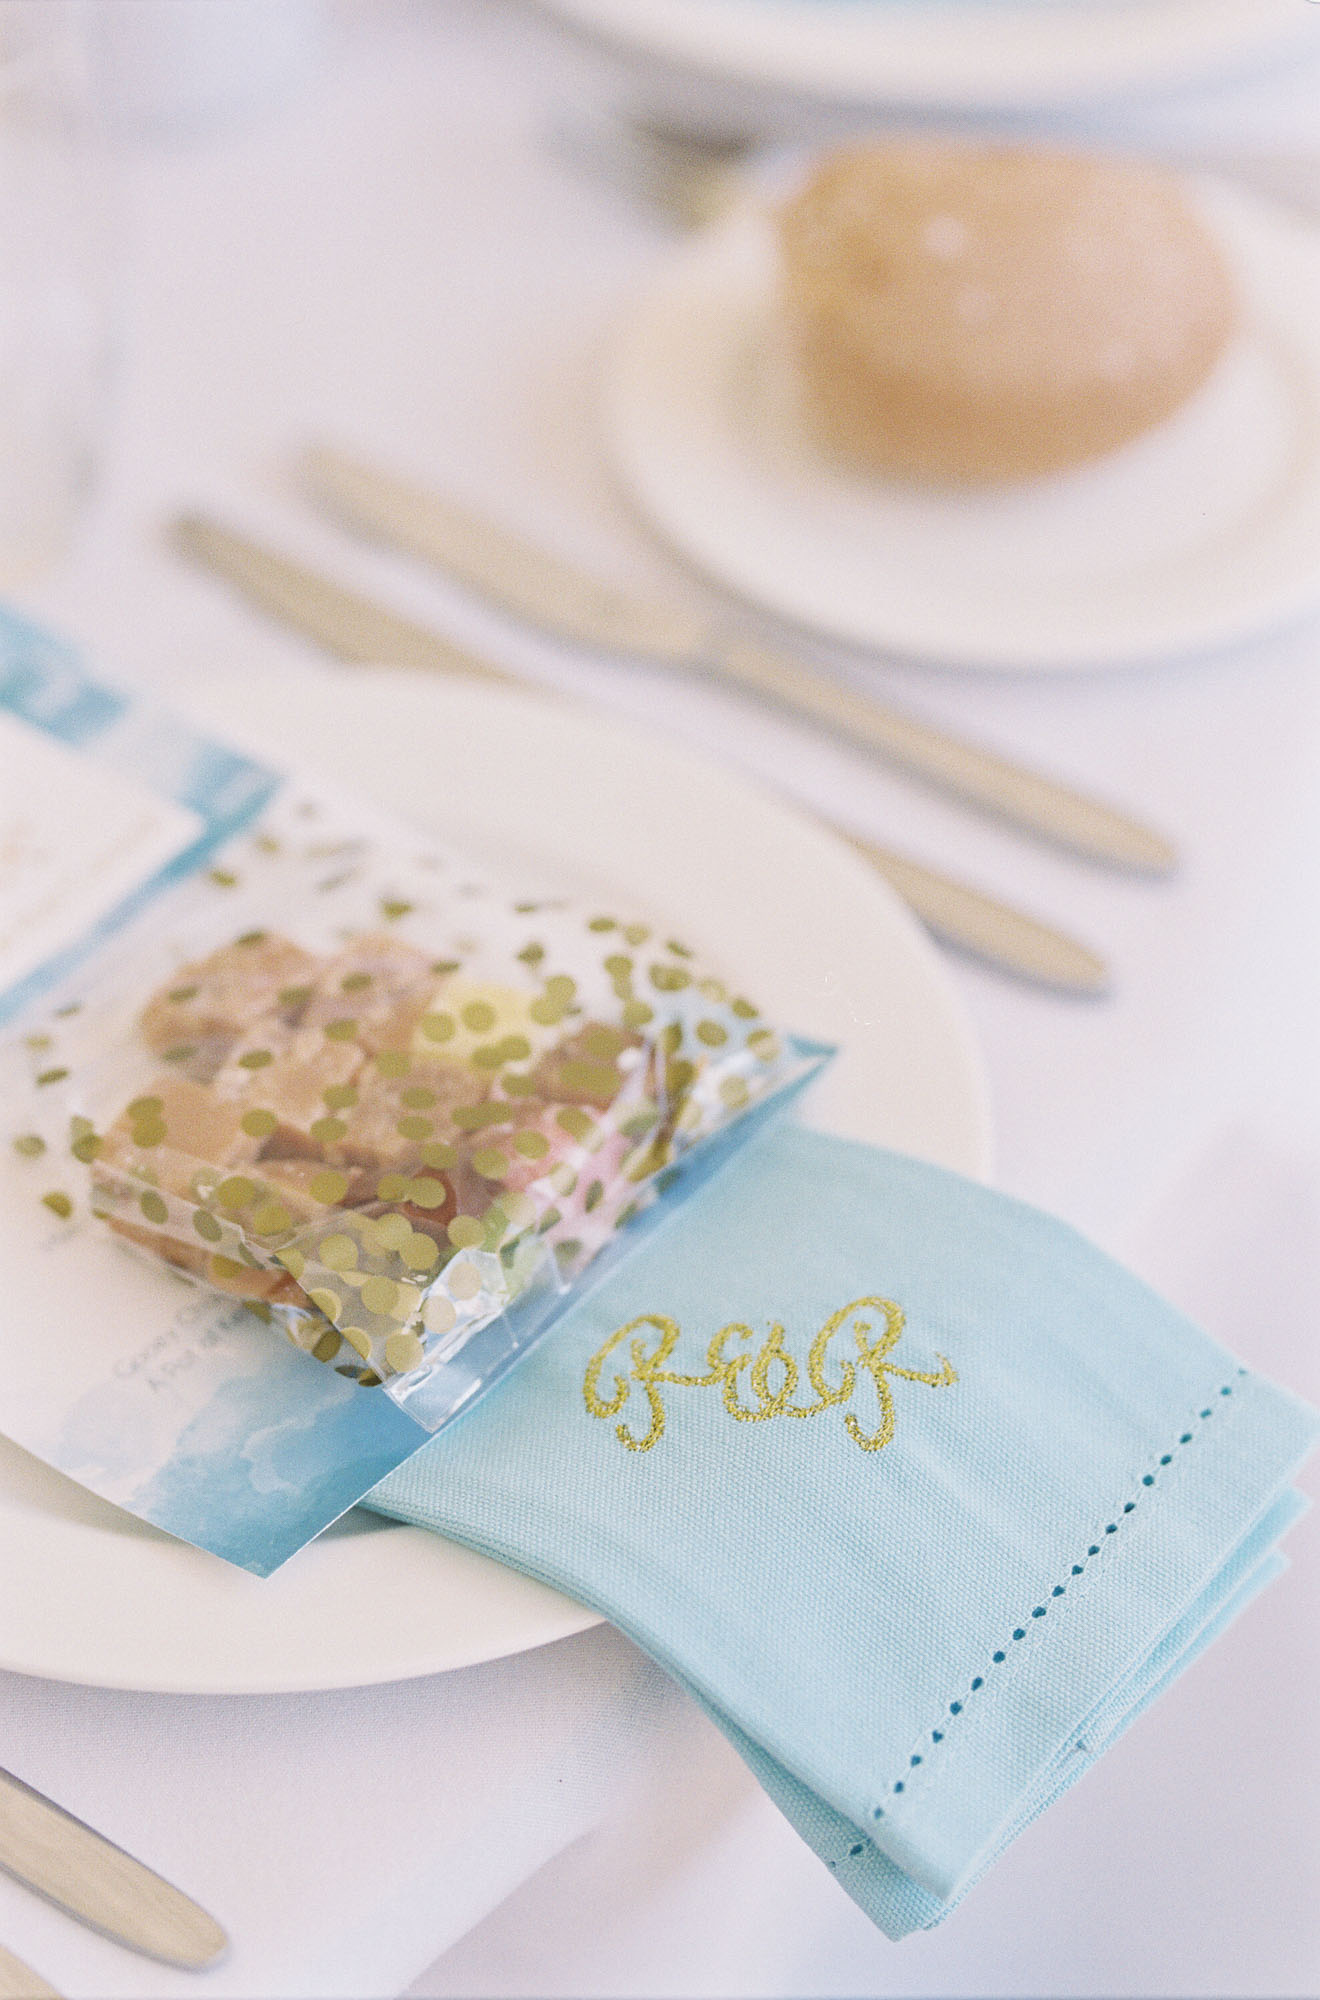 Personalised blue napkins at Chiddingstone Castle wedding